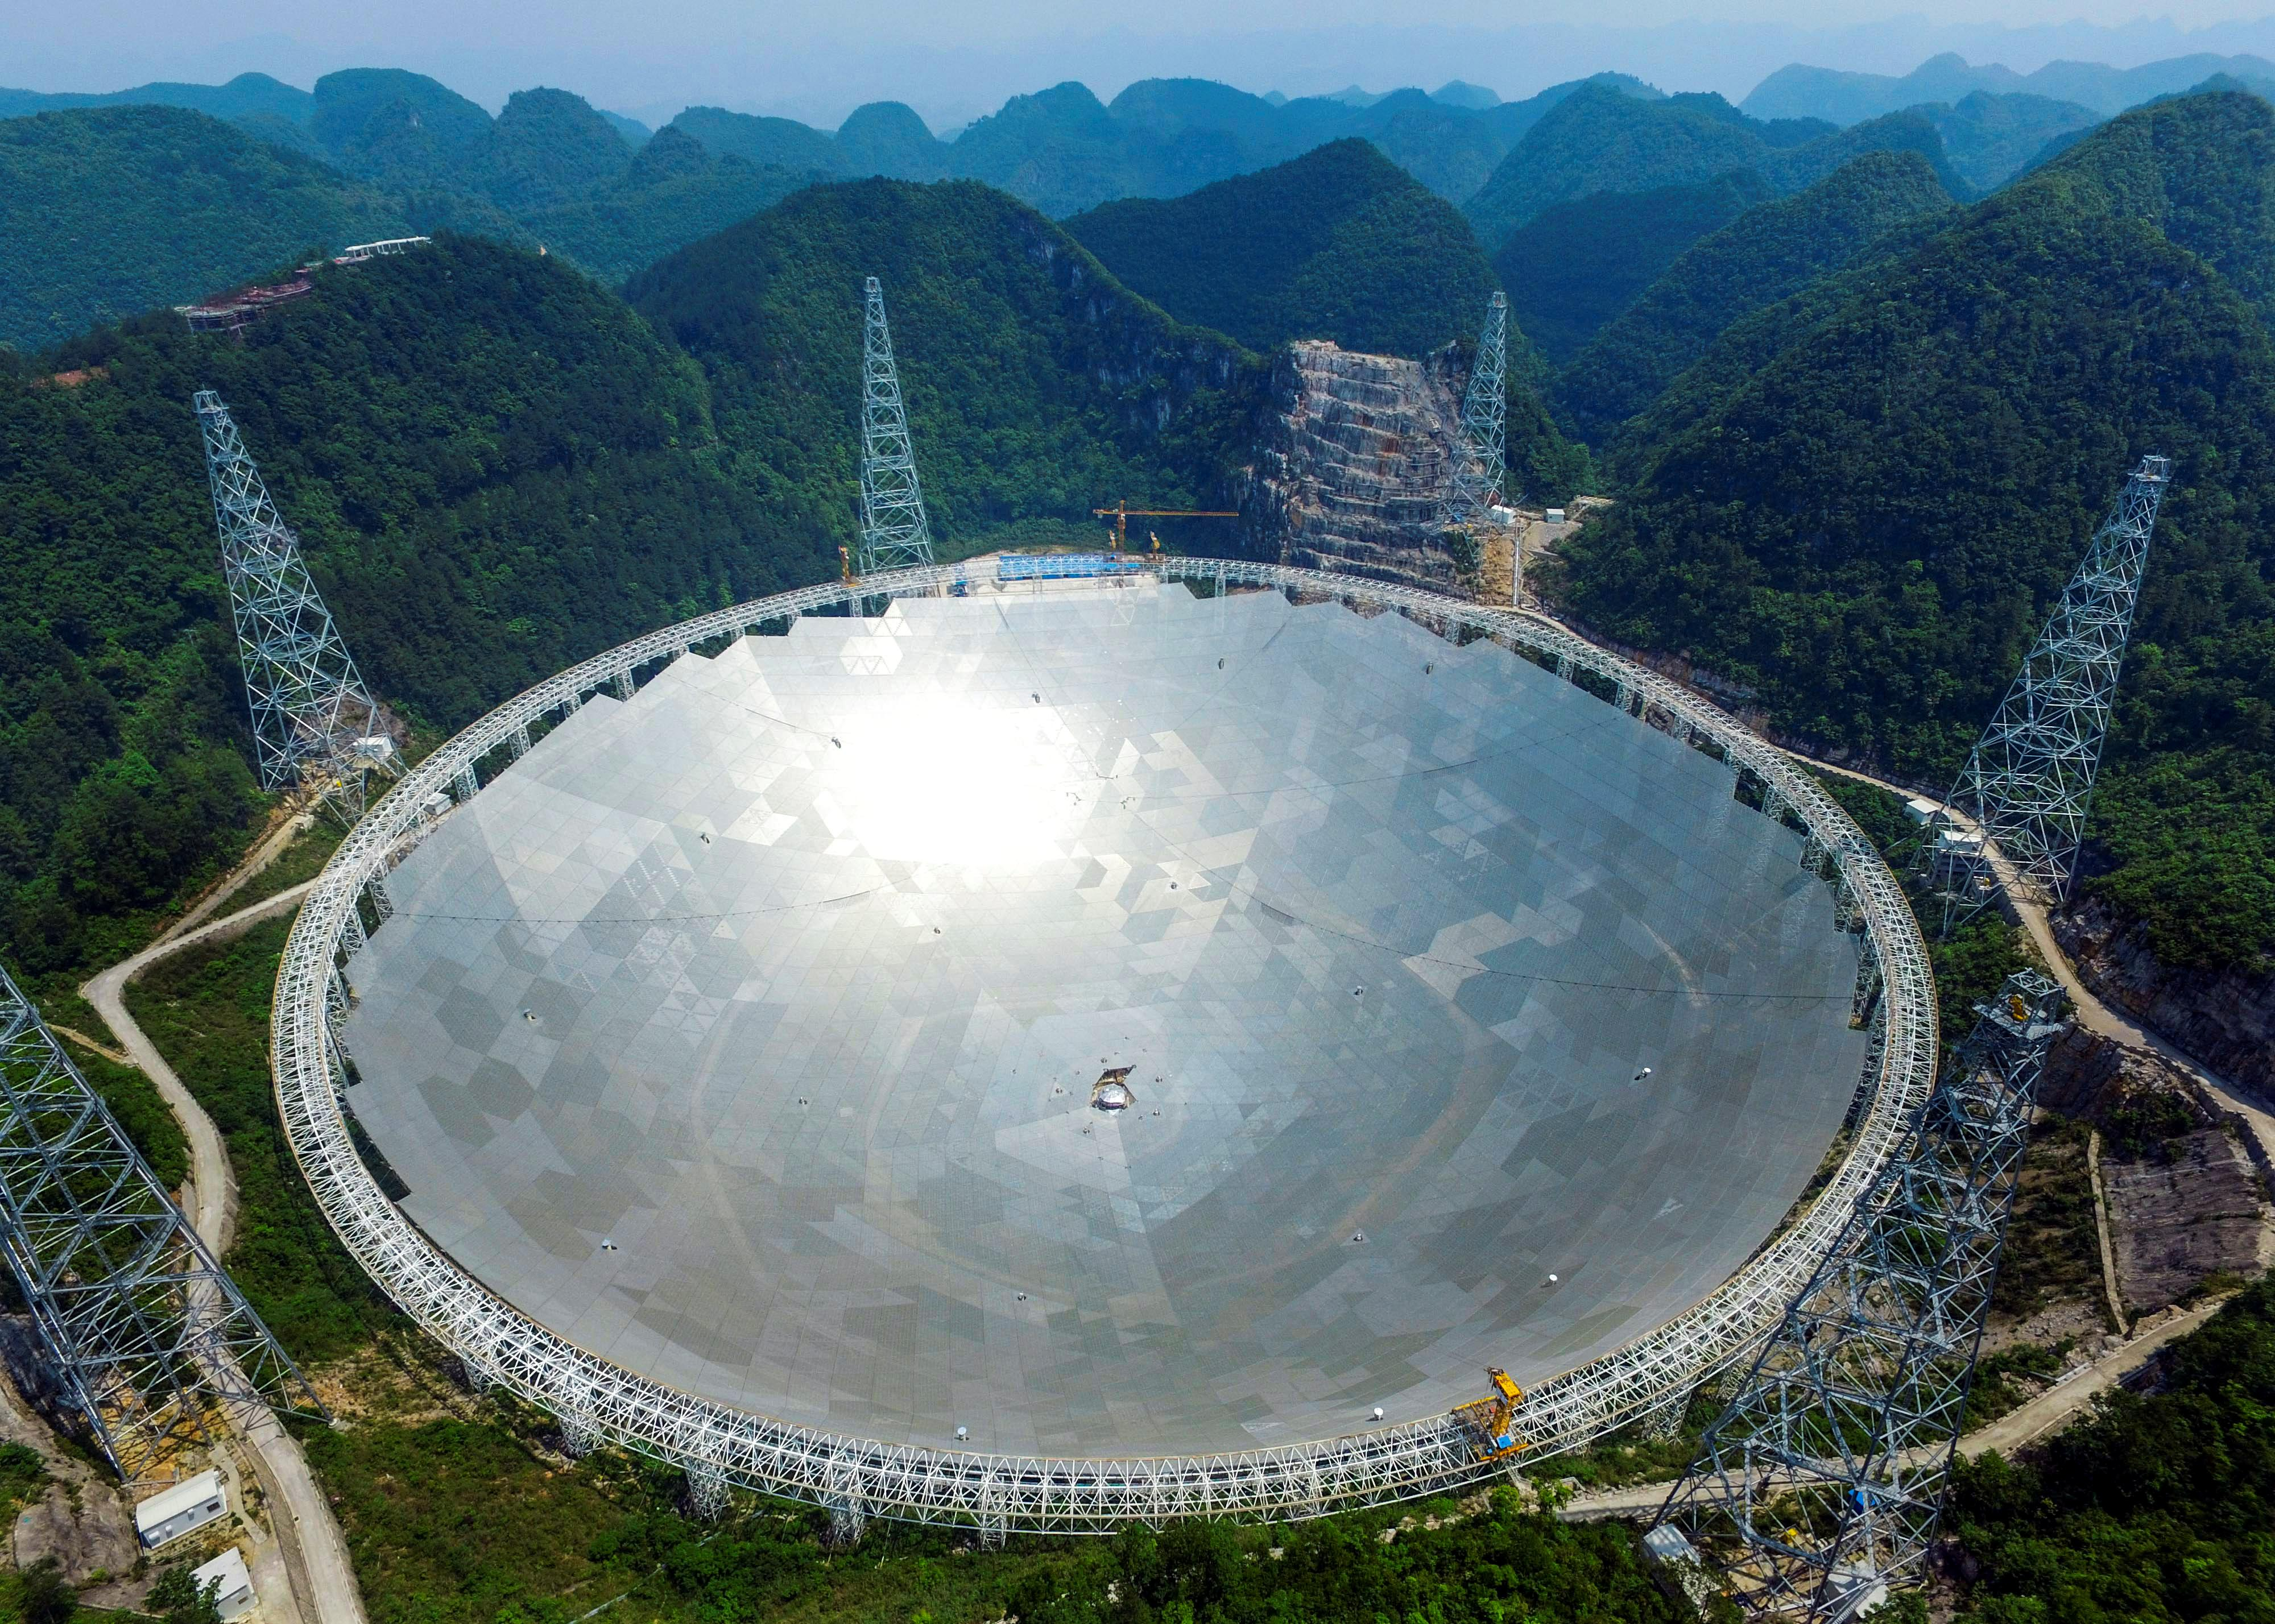 A 500-metre (1,640-ft.) aperture spherical telescope (FAST) is seen at the final stage of construction, among the mountains in Pingtang county, Guizhou province, China, May 7, 2016. REUTERS/Stringer ATTENTION EDITORS - THIS IMAGE WAS PROVIDED BY A THIRD PARTY. EDITORIAL USE ONLY. CHINA OUT. NO COMMERCIAL OR EDITORIAL SALES IN CHINA. TPX IMAGES OF THE DAY